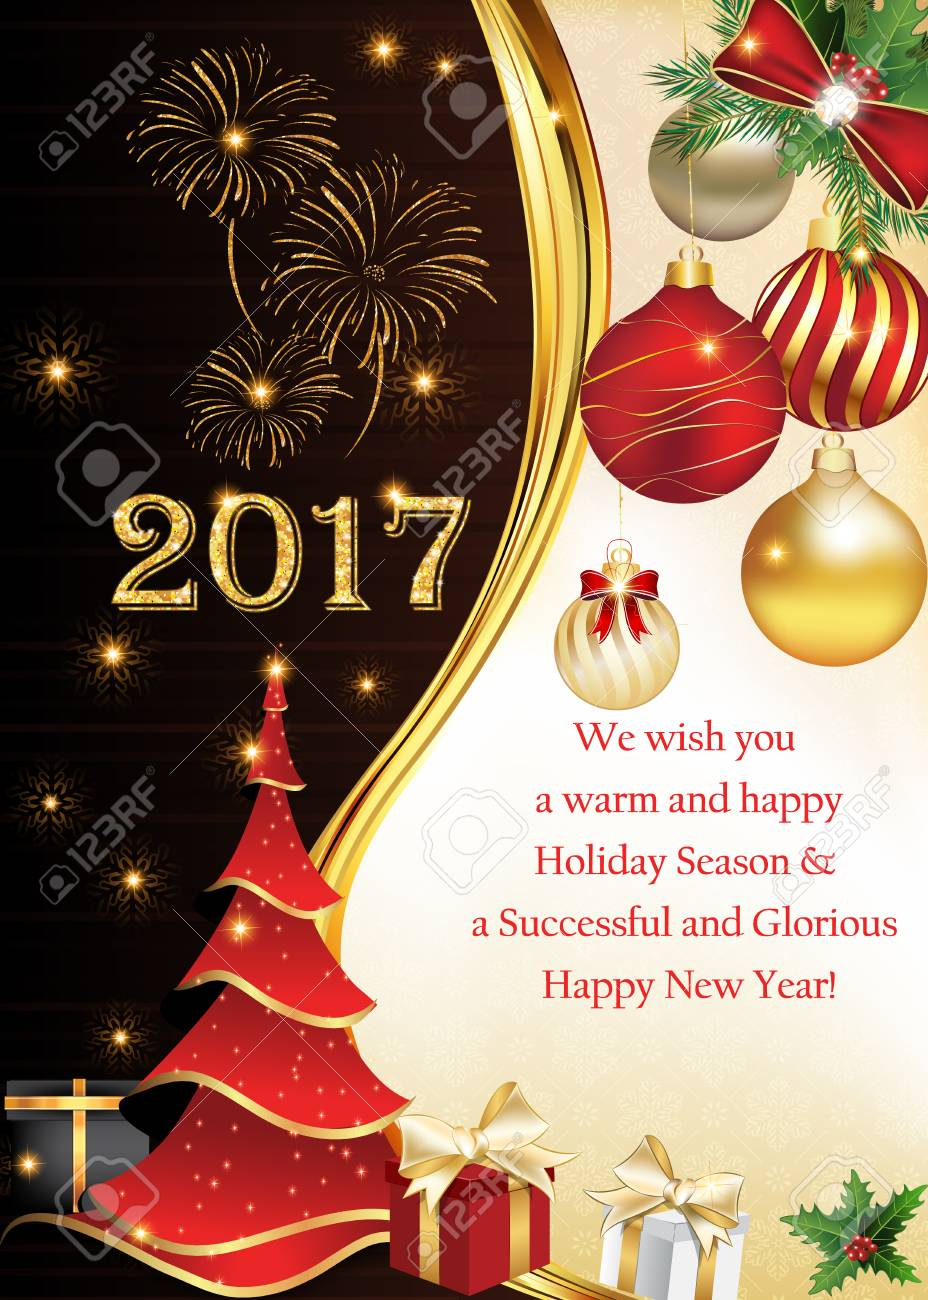 seasons wishes we wish you a warm and happy holiday season and a successful and